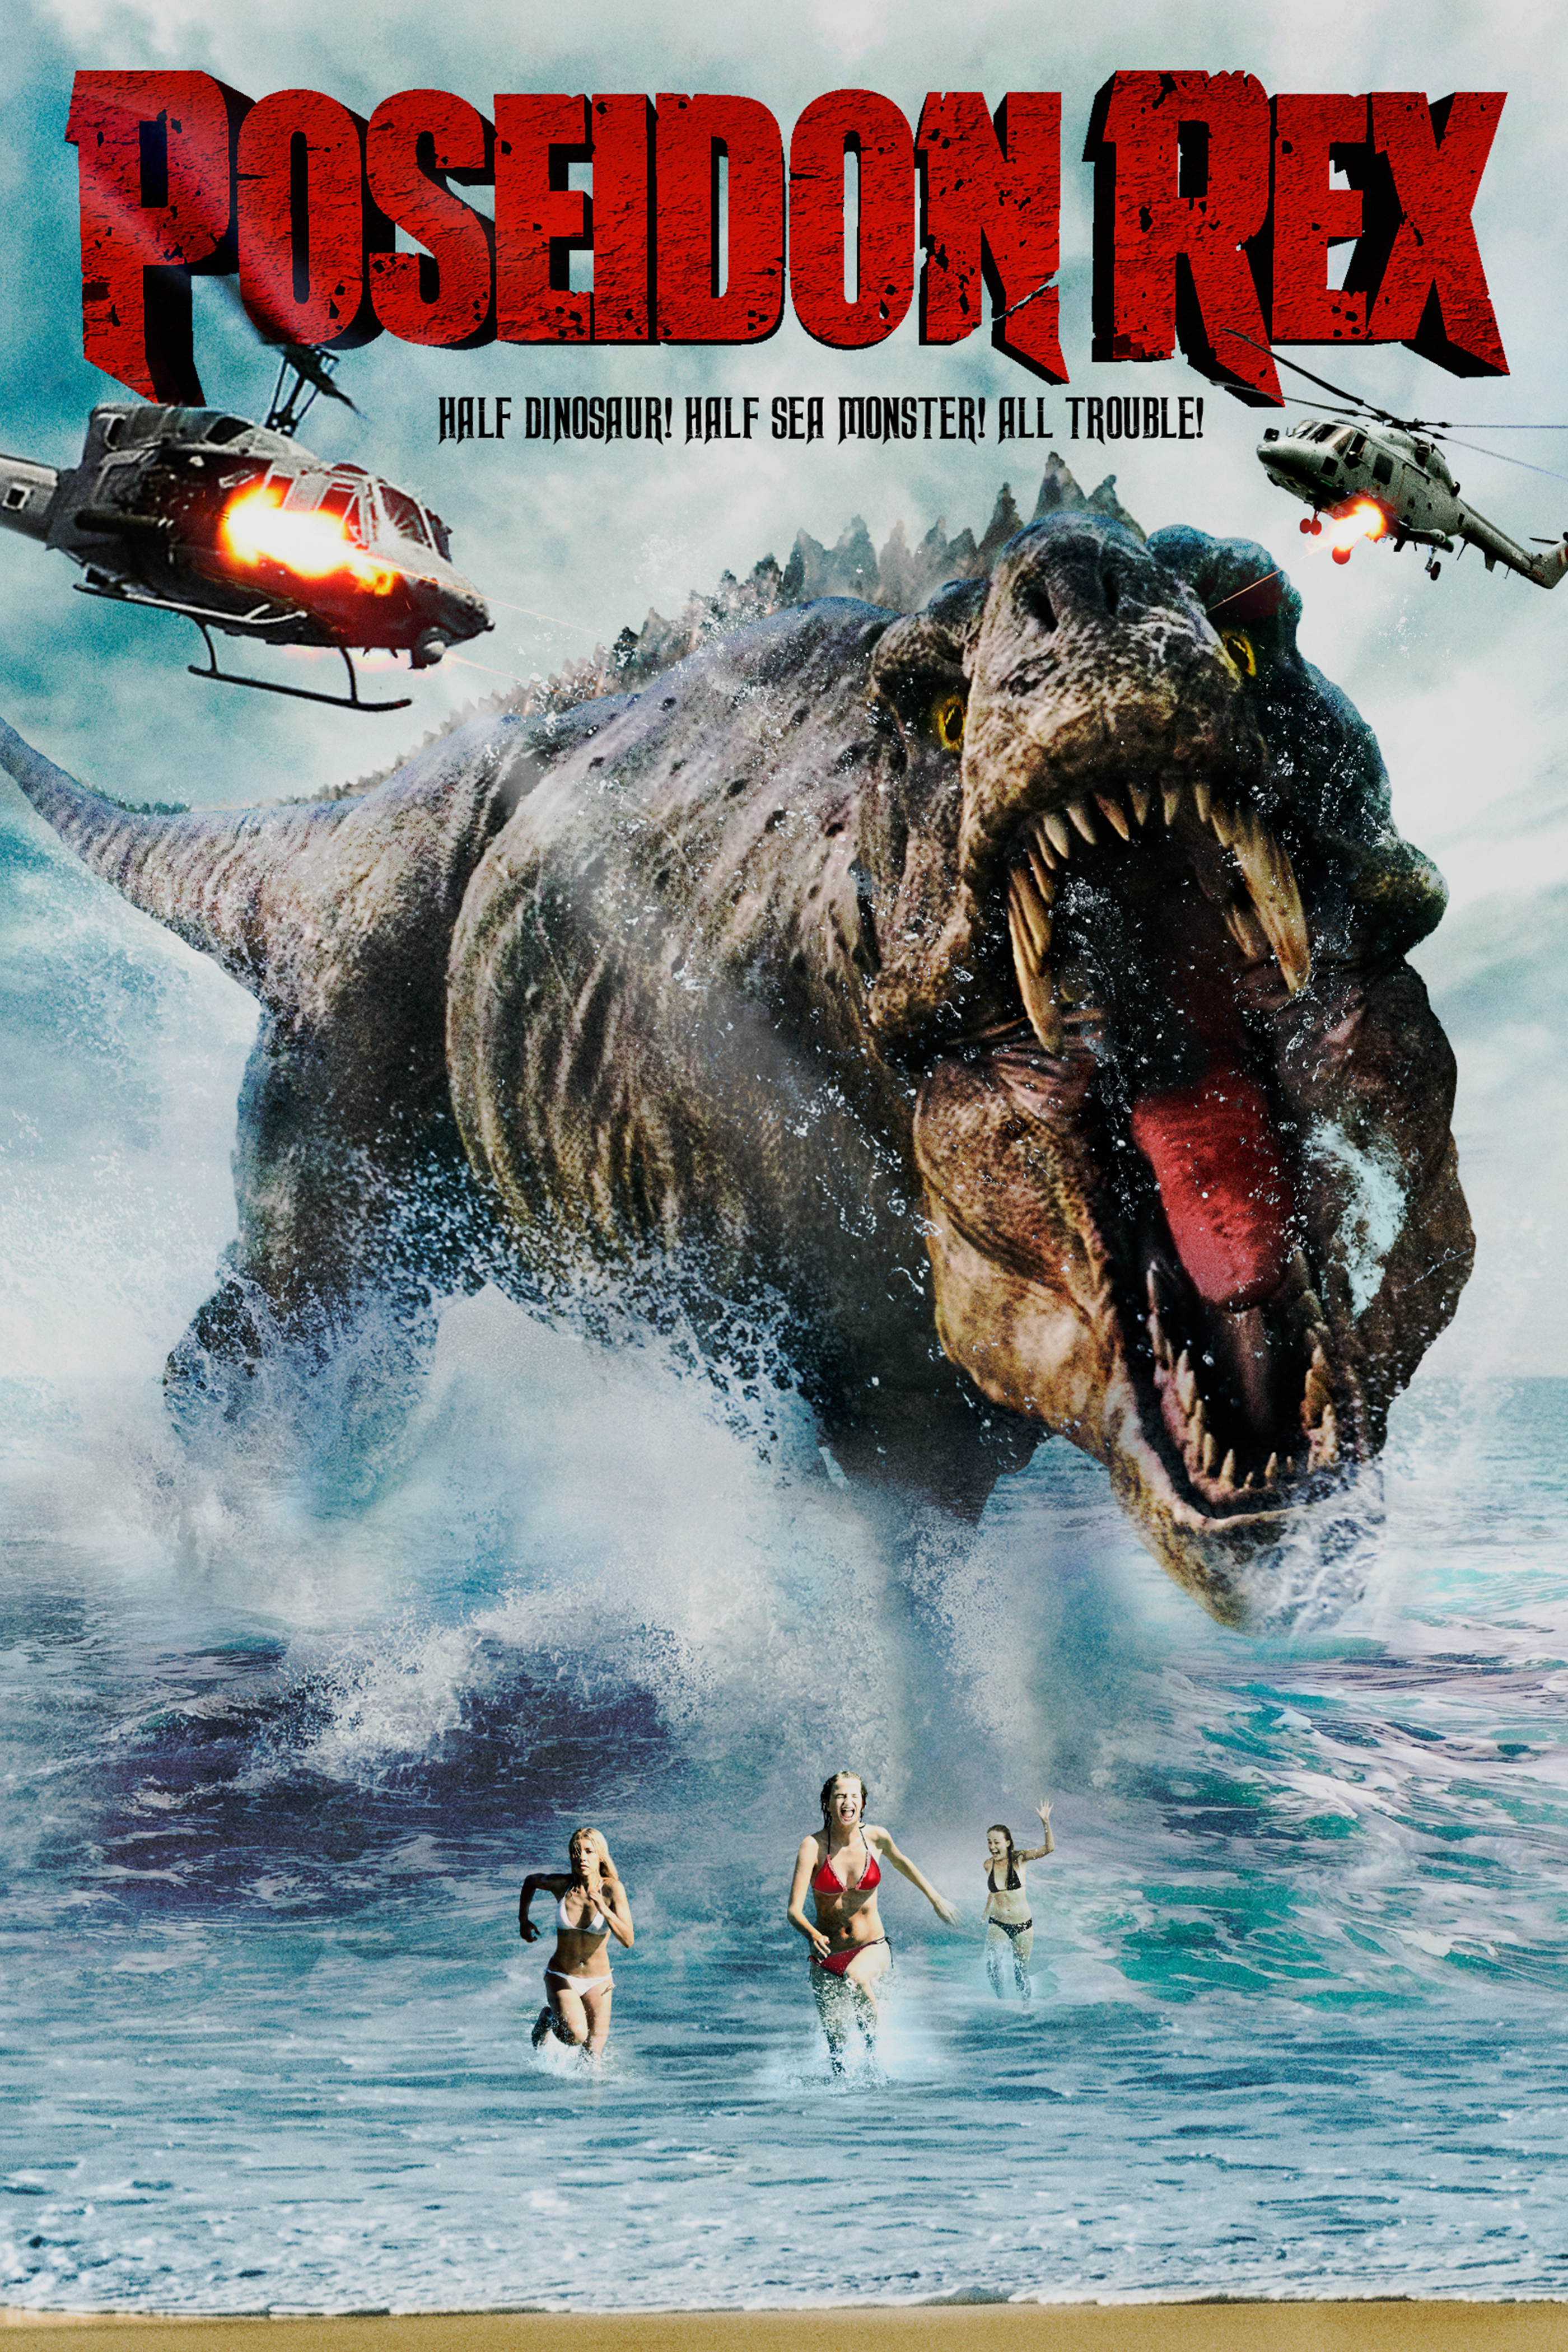 poseidon rex 2013 tamil dubbed movie download